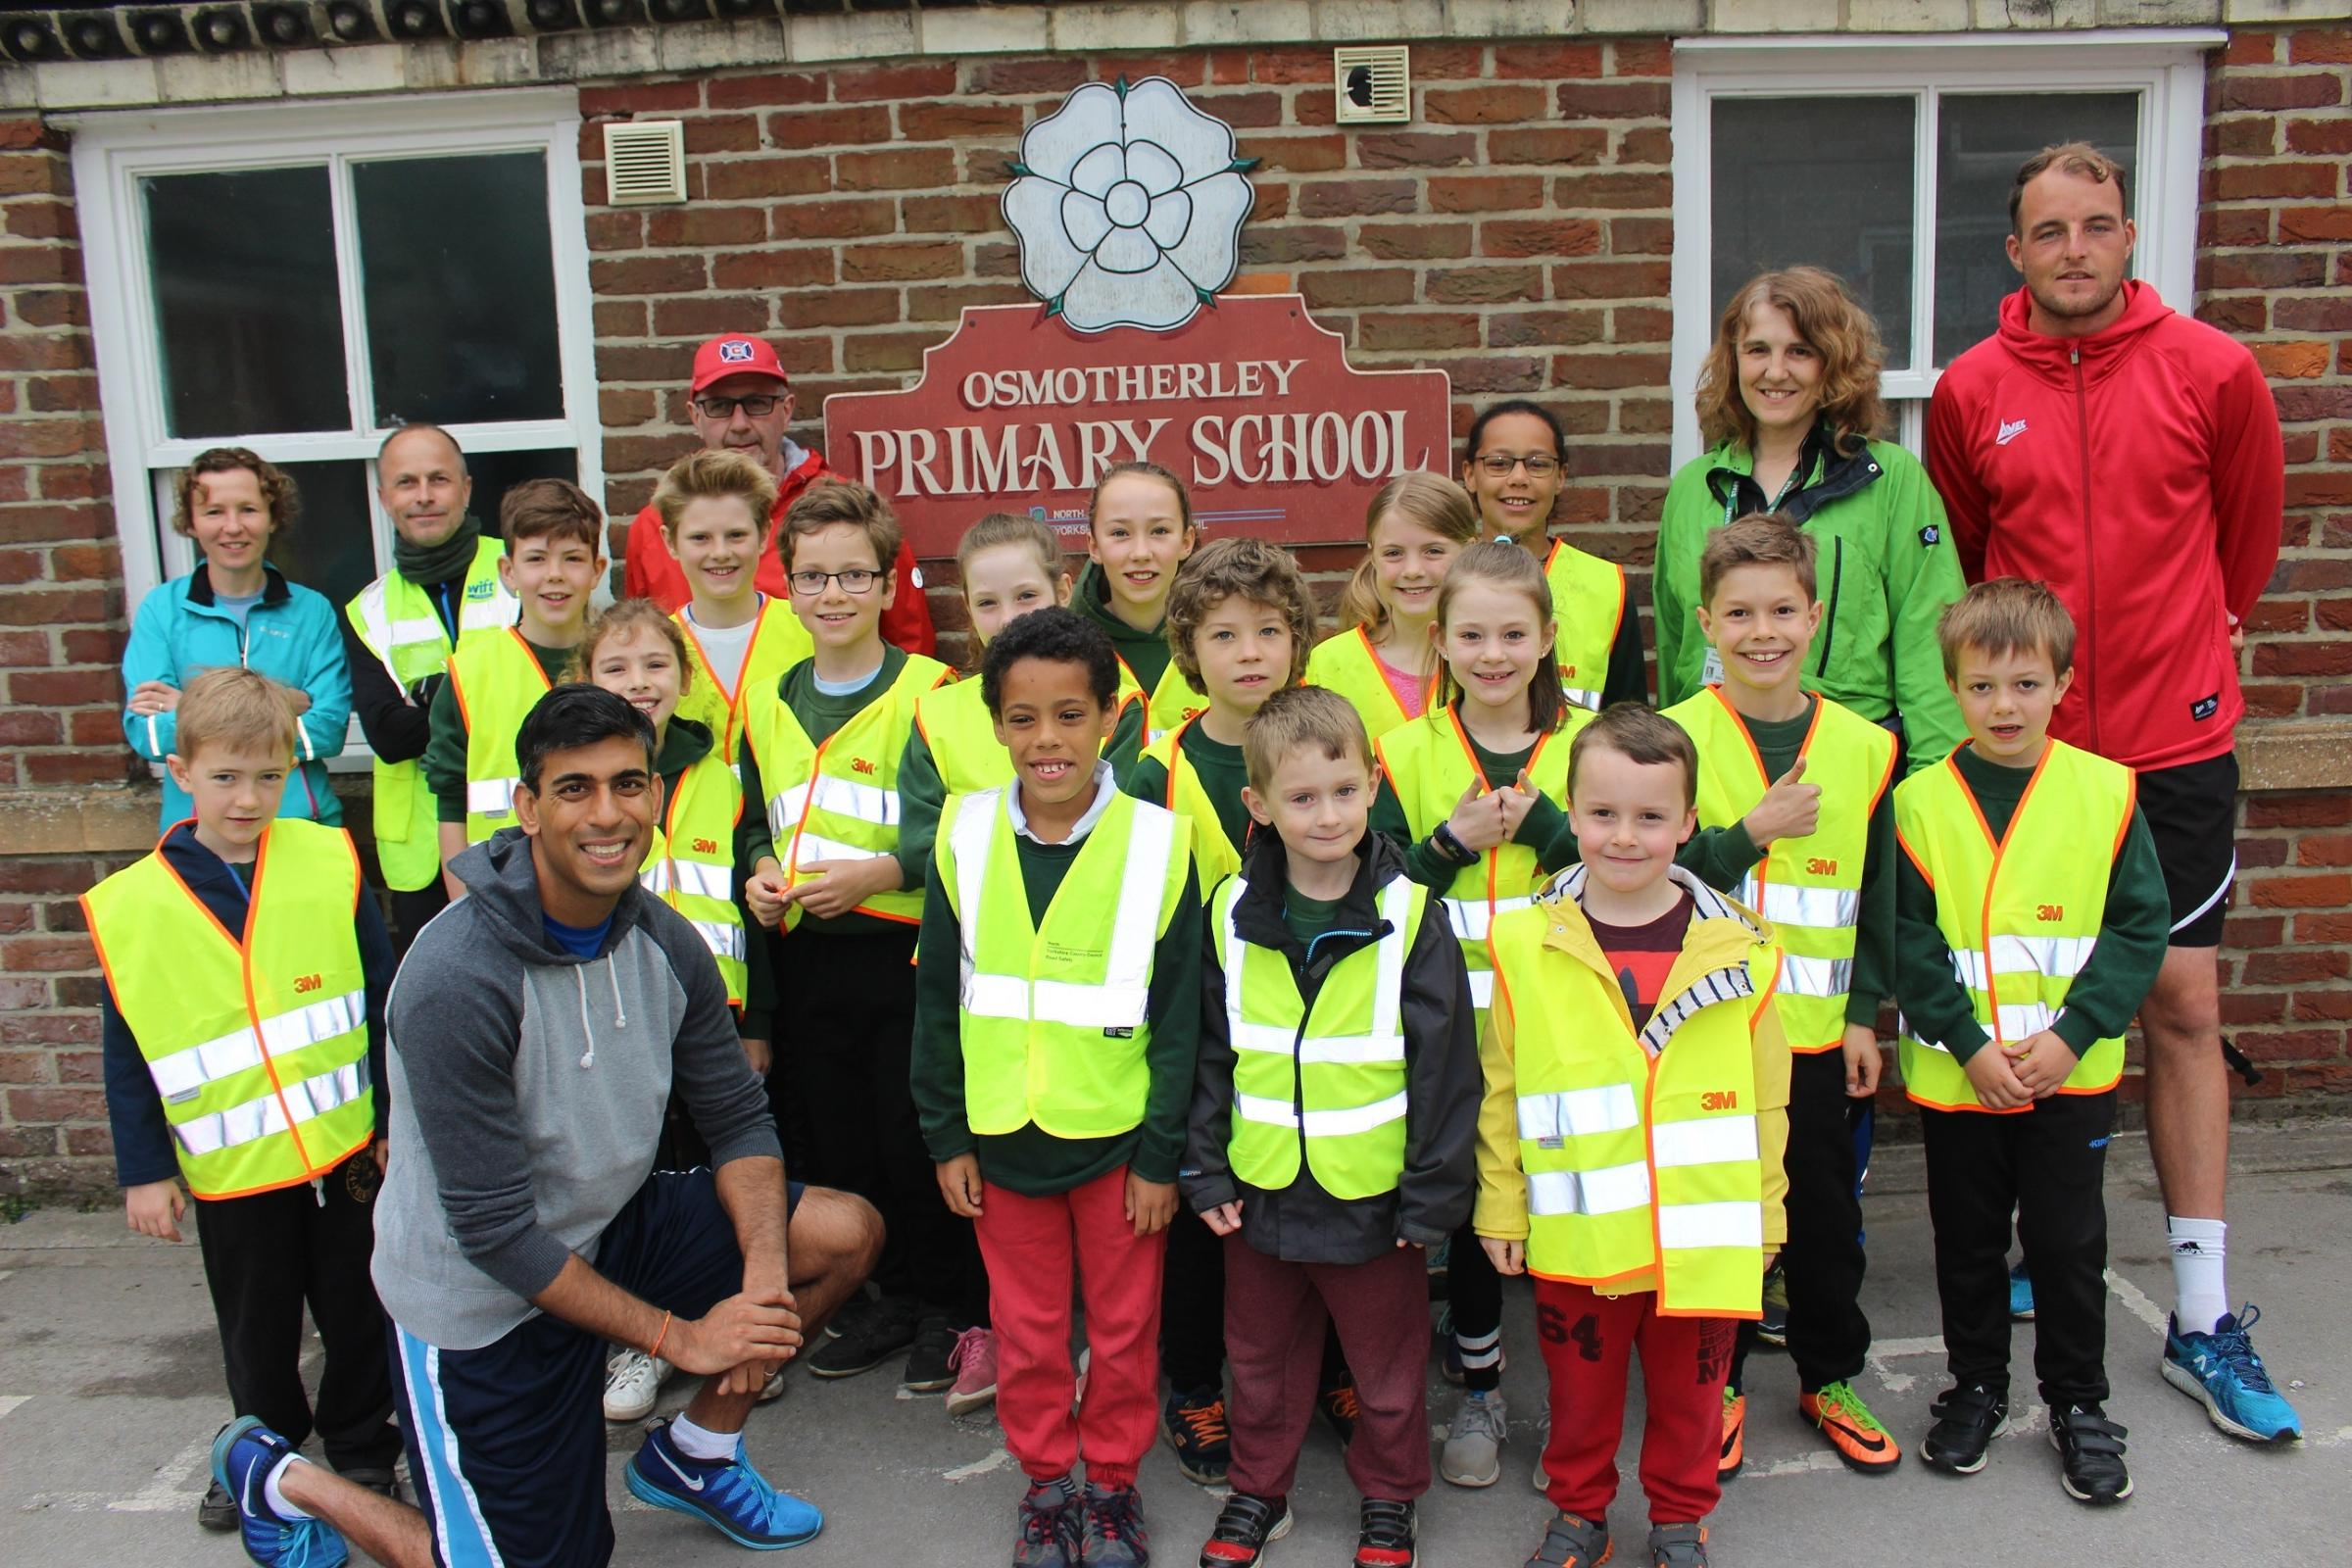 Richmond MP Rishi Sunak donned his running gear to support Osmotherley Primary School's running initiative